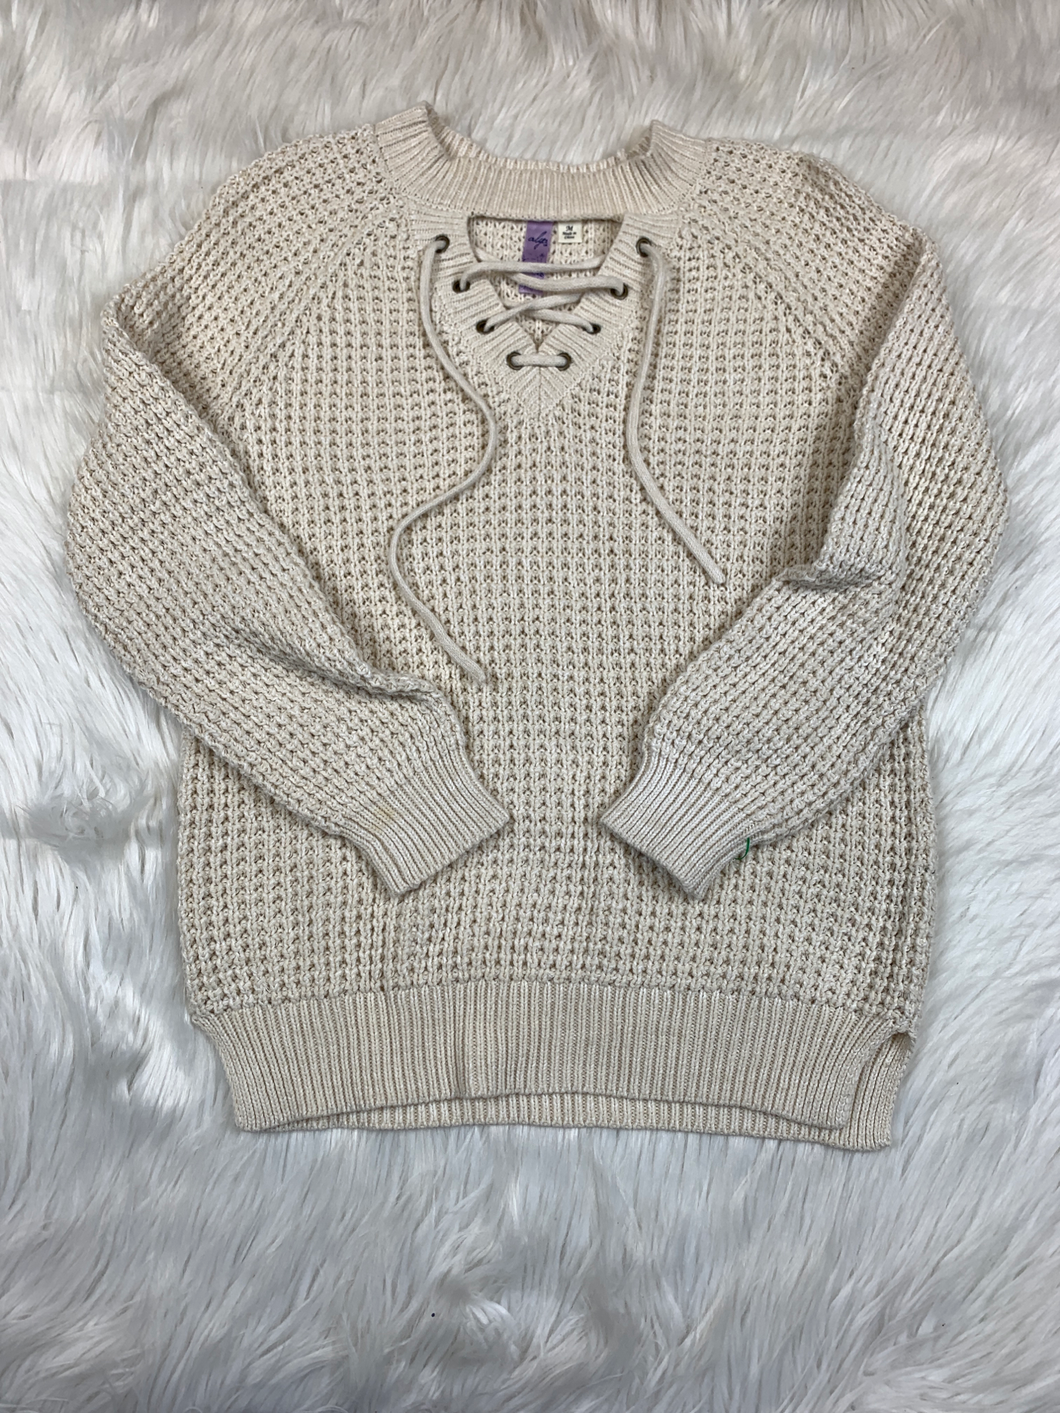 Alya Sweater Size Medium